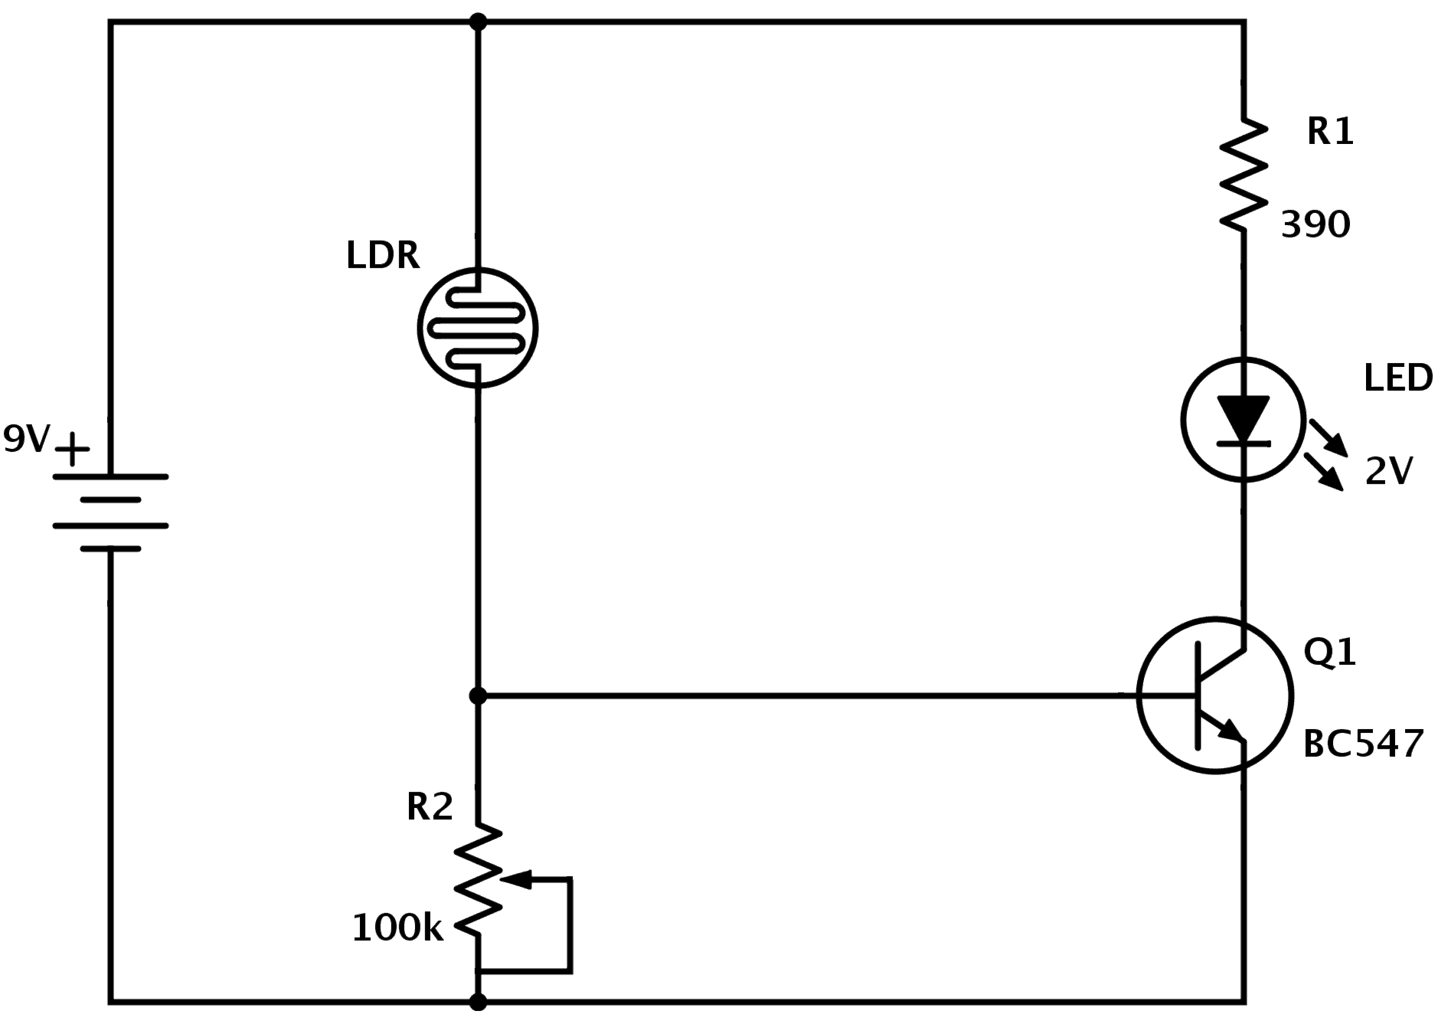 LDR circuit improved circuit diagram how to read and understand any schematic electronic circuit diagrams at mifinder.co